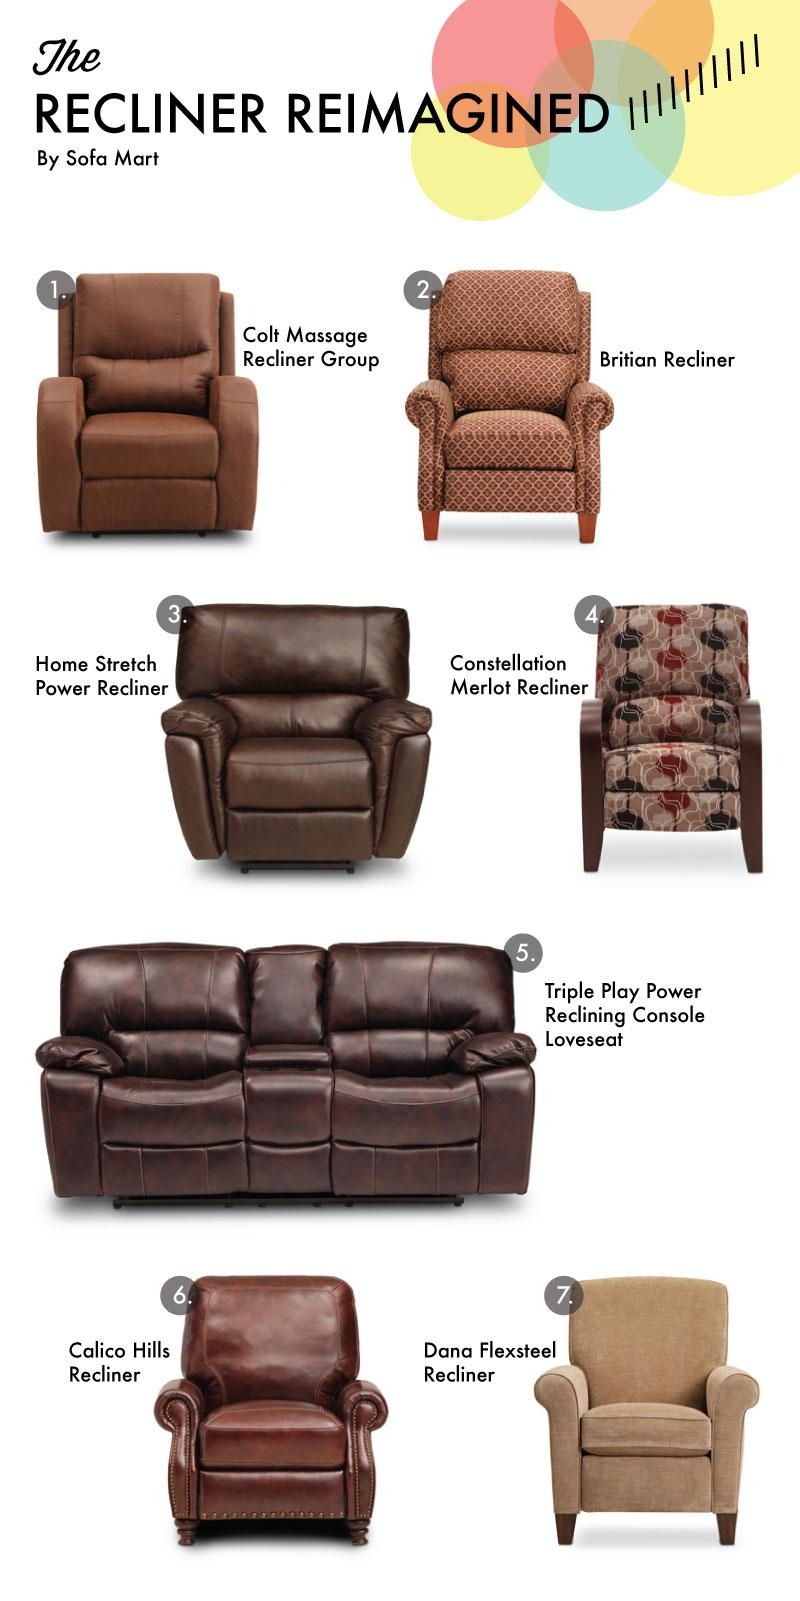 Recliner Reimagined For Father's Day – Sofa Mart For The Front Door Throughout Sofa Mart Chairs (View 17 of 20)